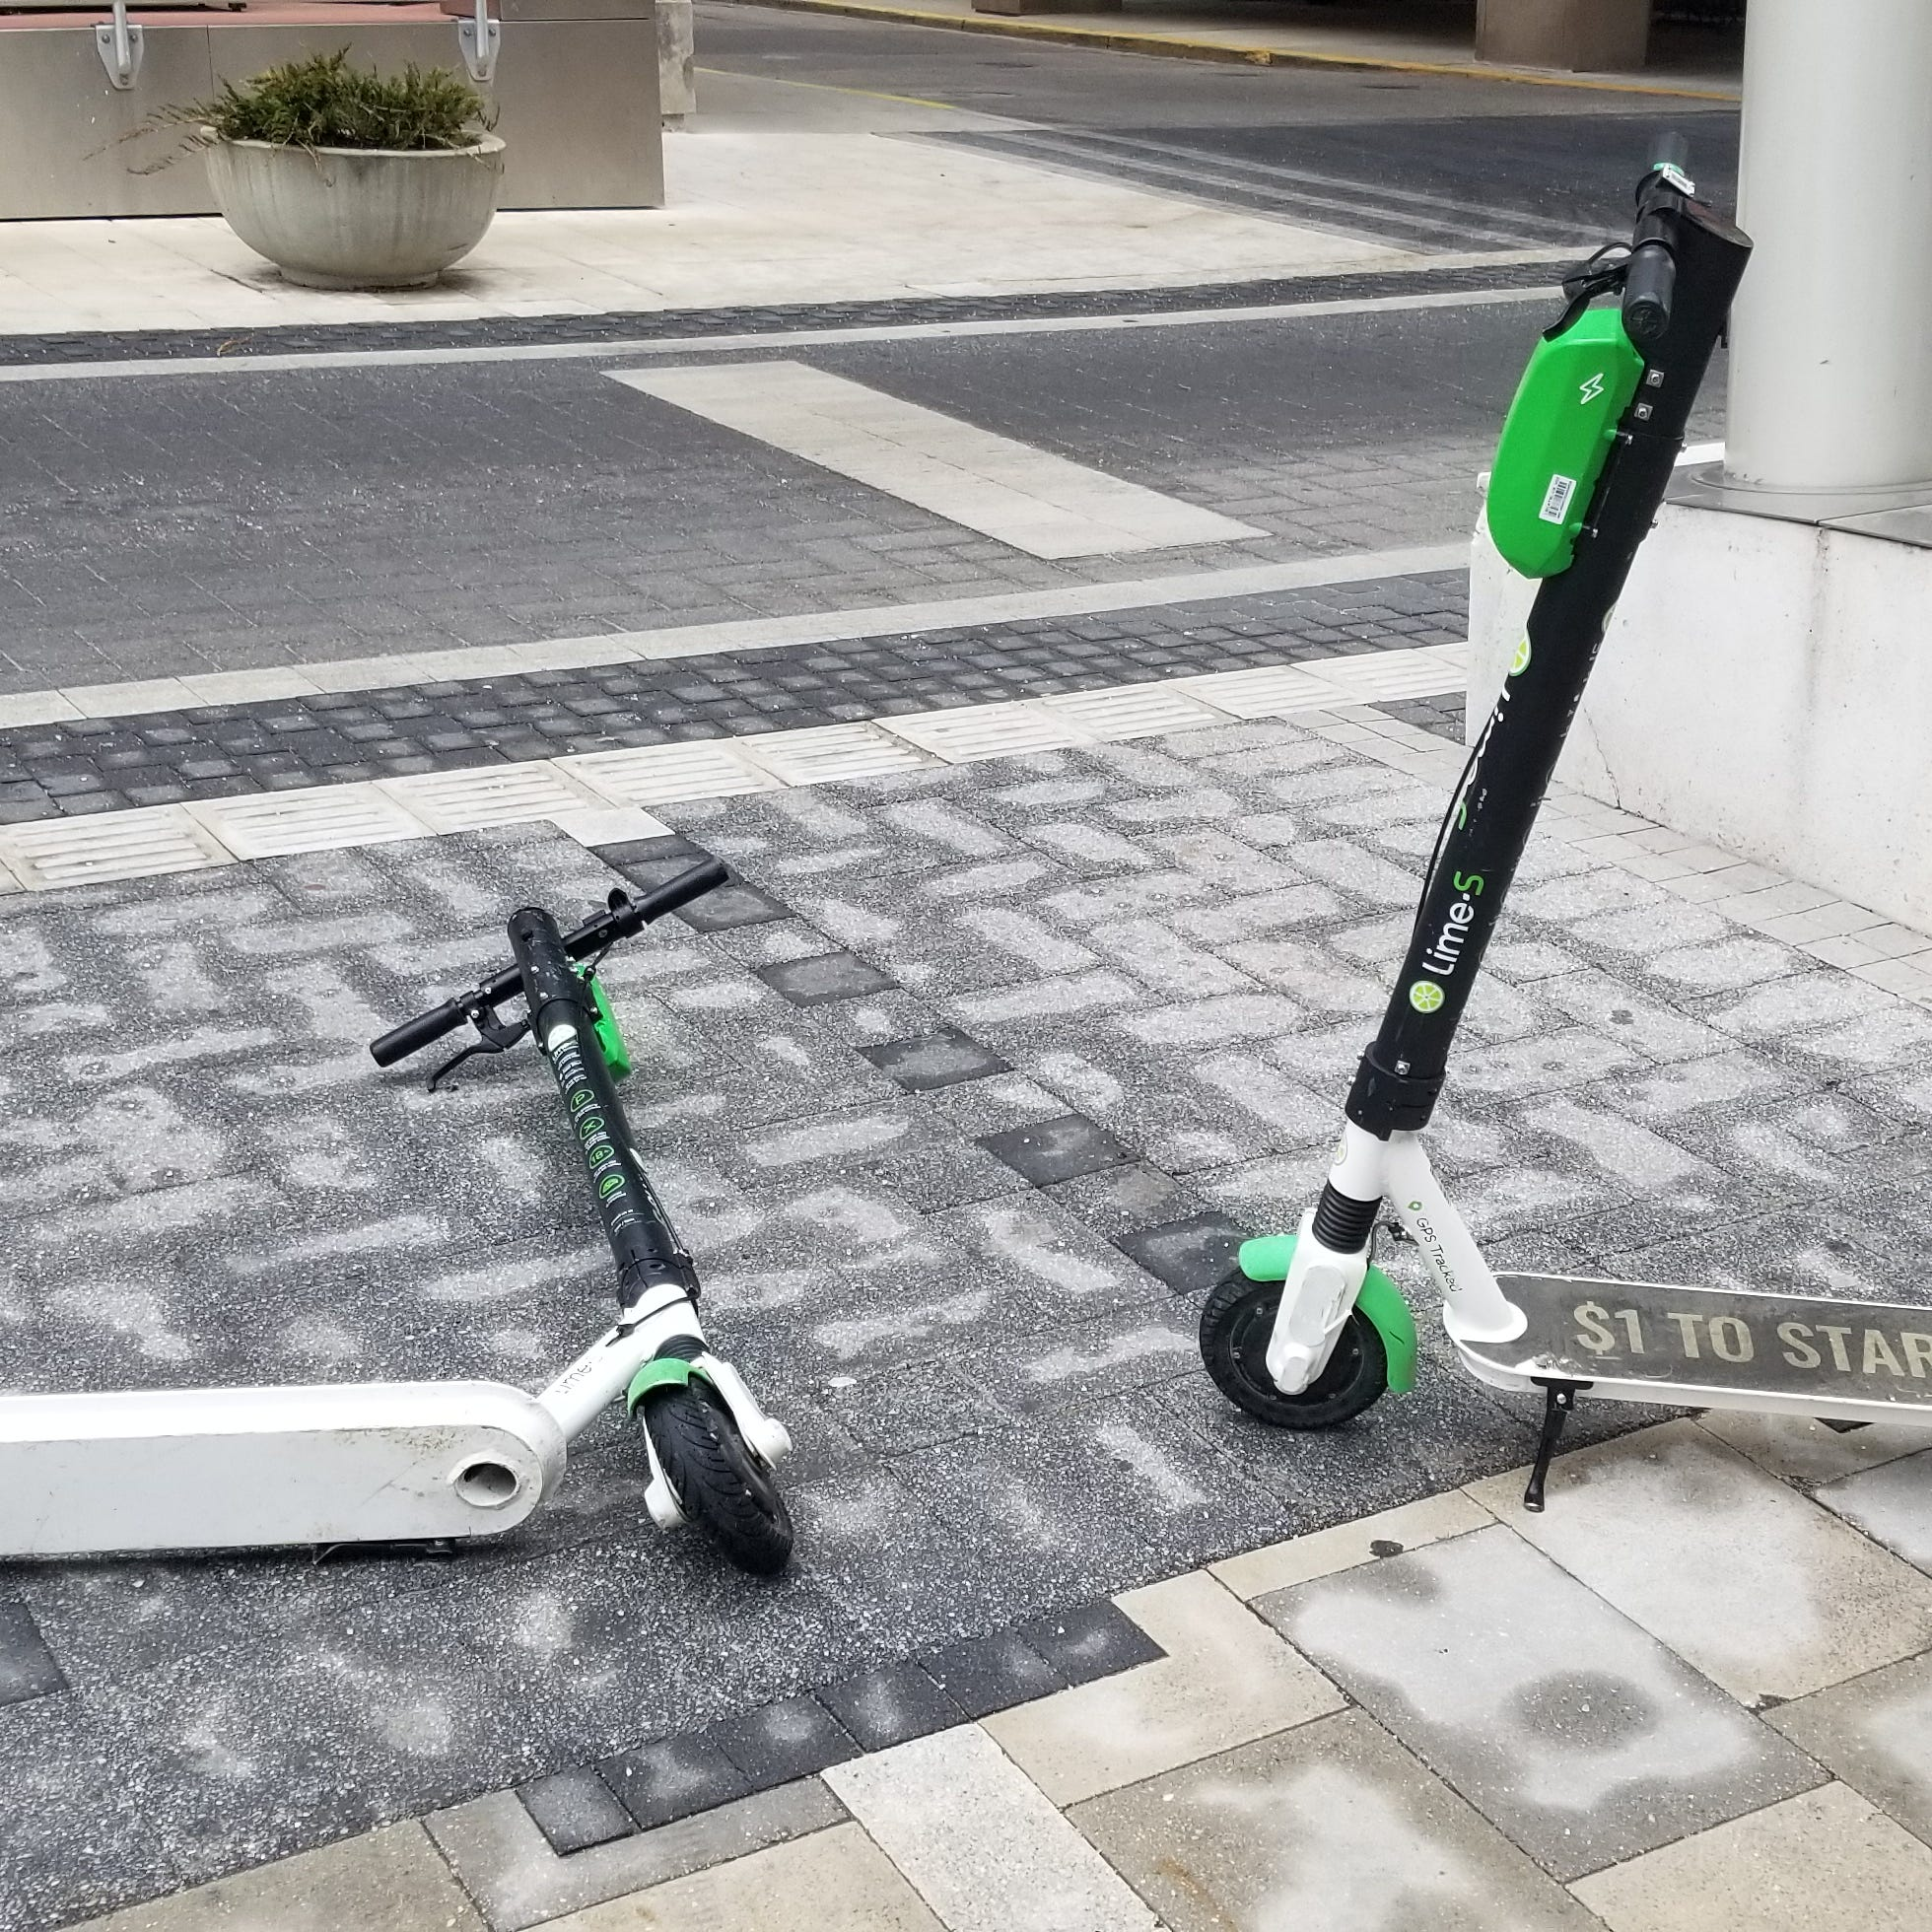 Love 'em or hate 'em: E-scooters likely on their way to Fort Collins this summer